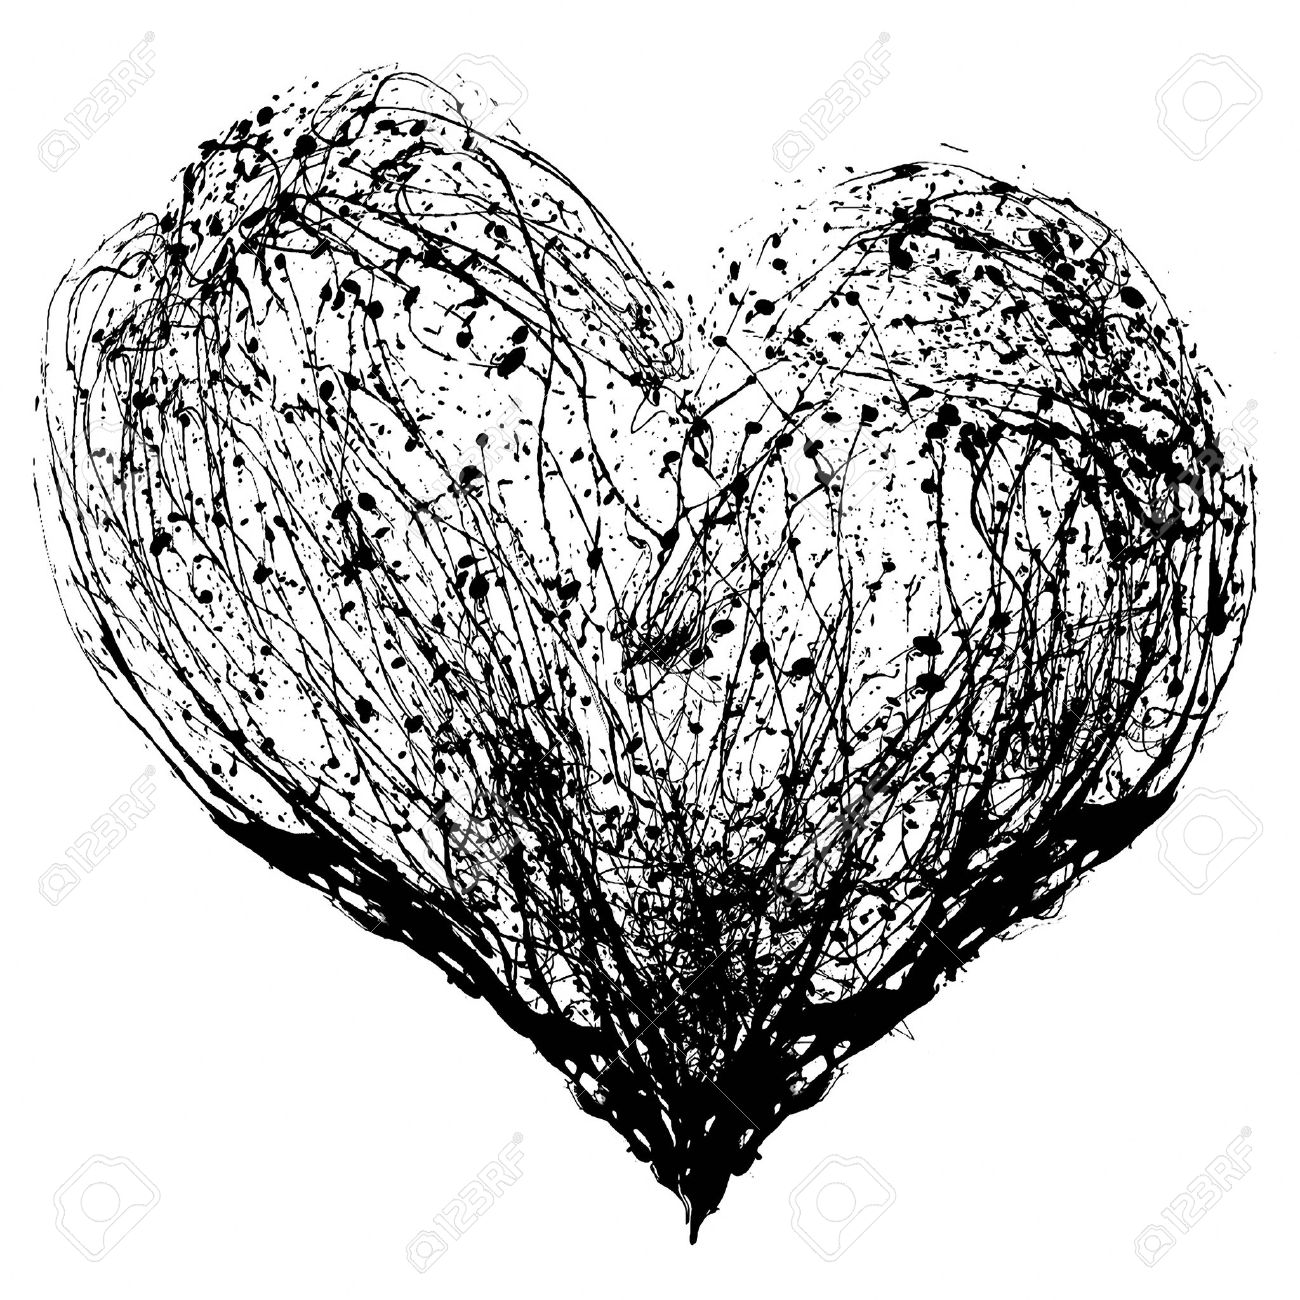 Drawings Of Hearts In Black And White